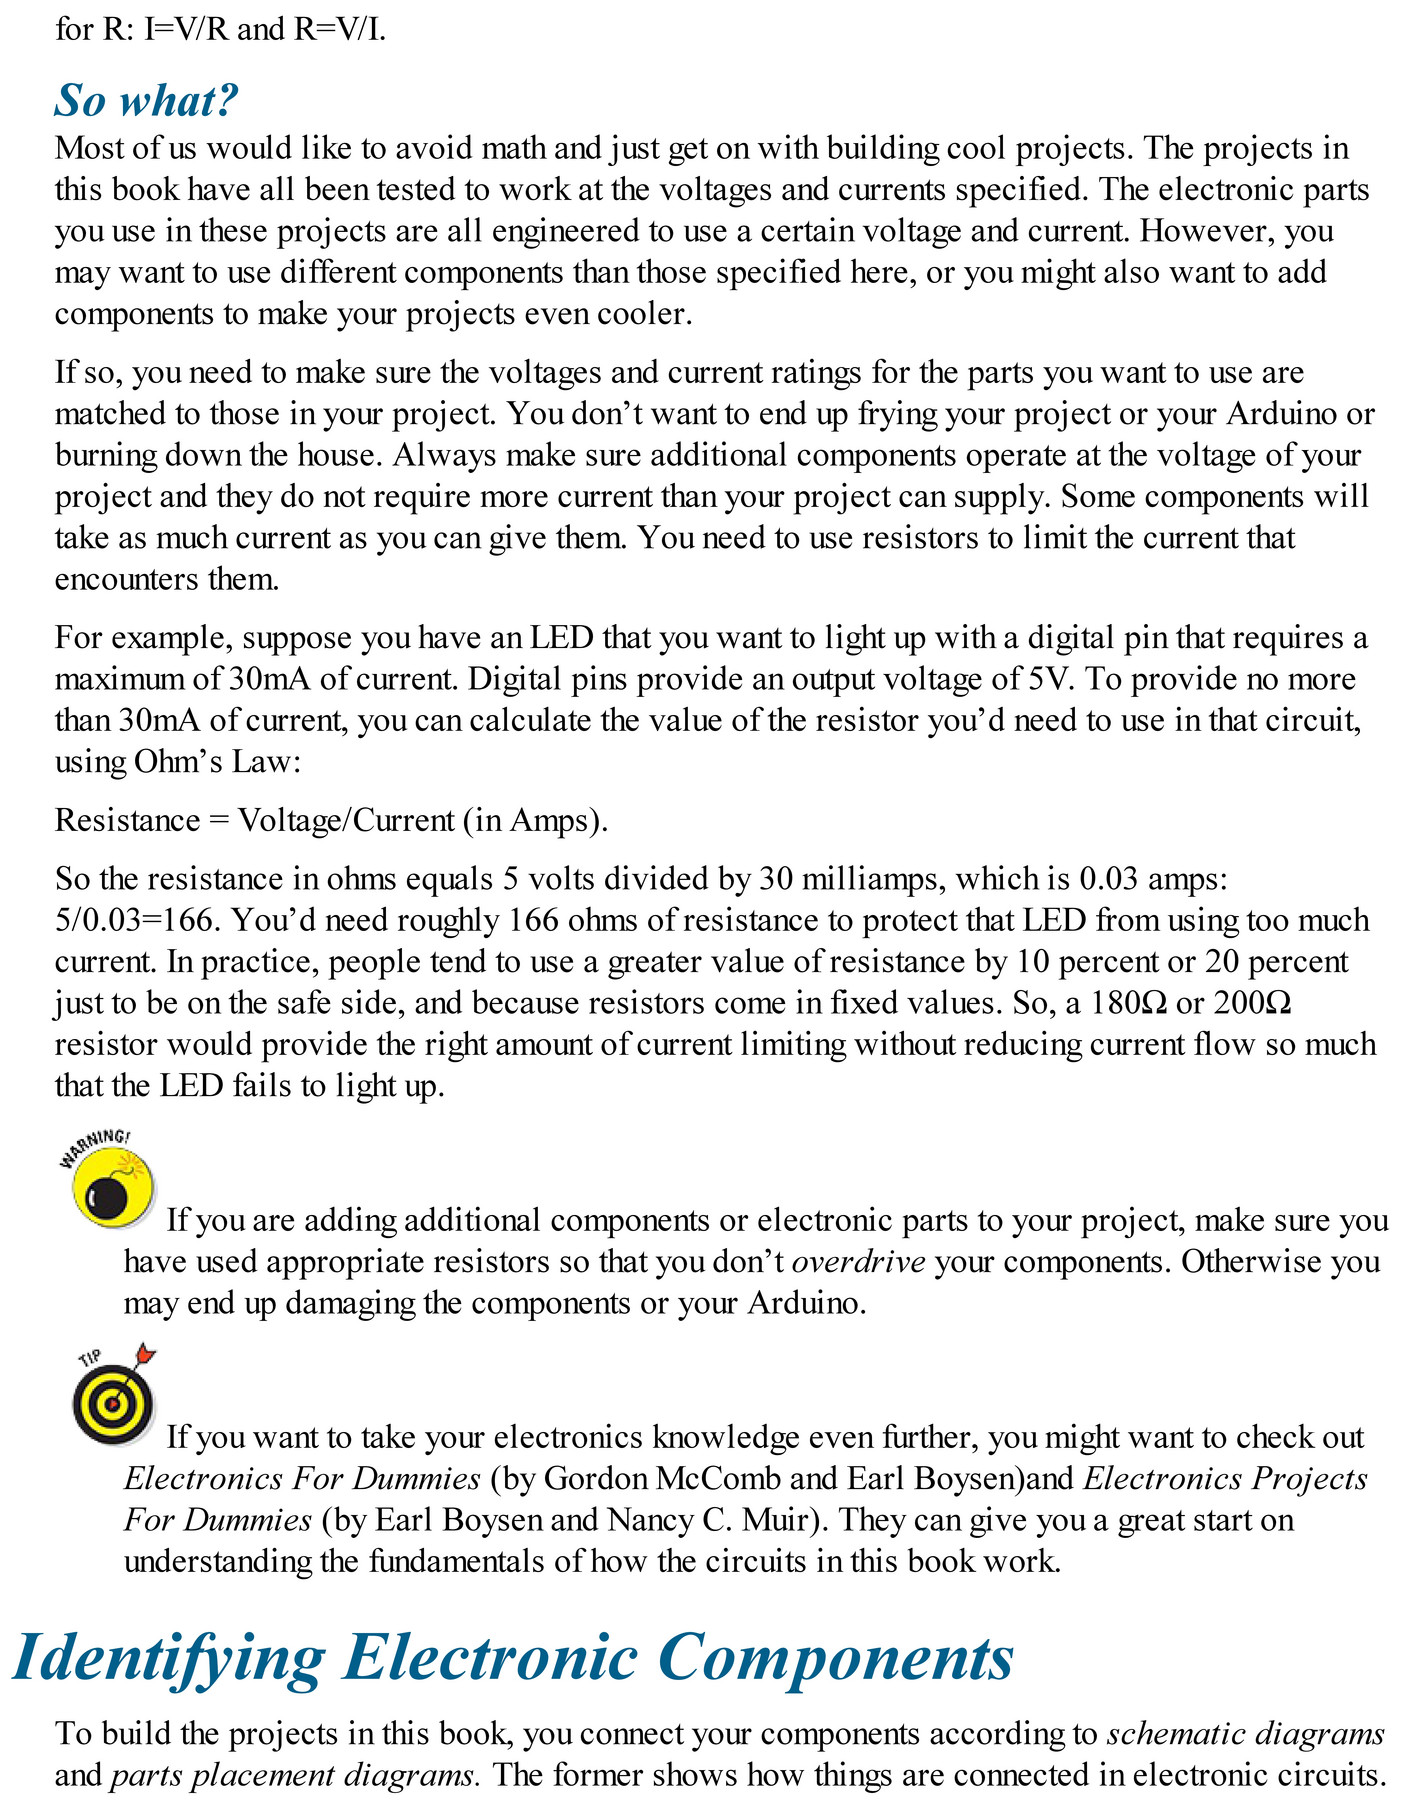 Revistas - Arduino Projects for Dummies - Page 62-63 ... on maintenance for dummies, artwork for dummies, layout for dummies, tips for dummies, tools for dummies, tutorials for dummies, troubleshooting for dummies, repair for dummies, warranty for dummies, technology for dummies, cables for dummies, maps for dummies, wiring for dummies, publisher for dummies, software for dummies, electrical for dummies, wire diagram for dummies, reports for dummies, service for dummies, data for dummies,